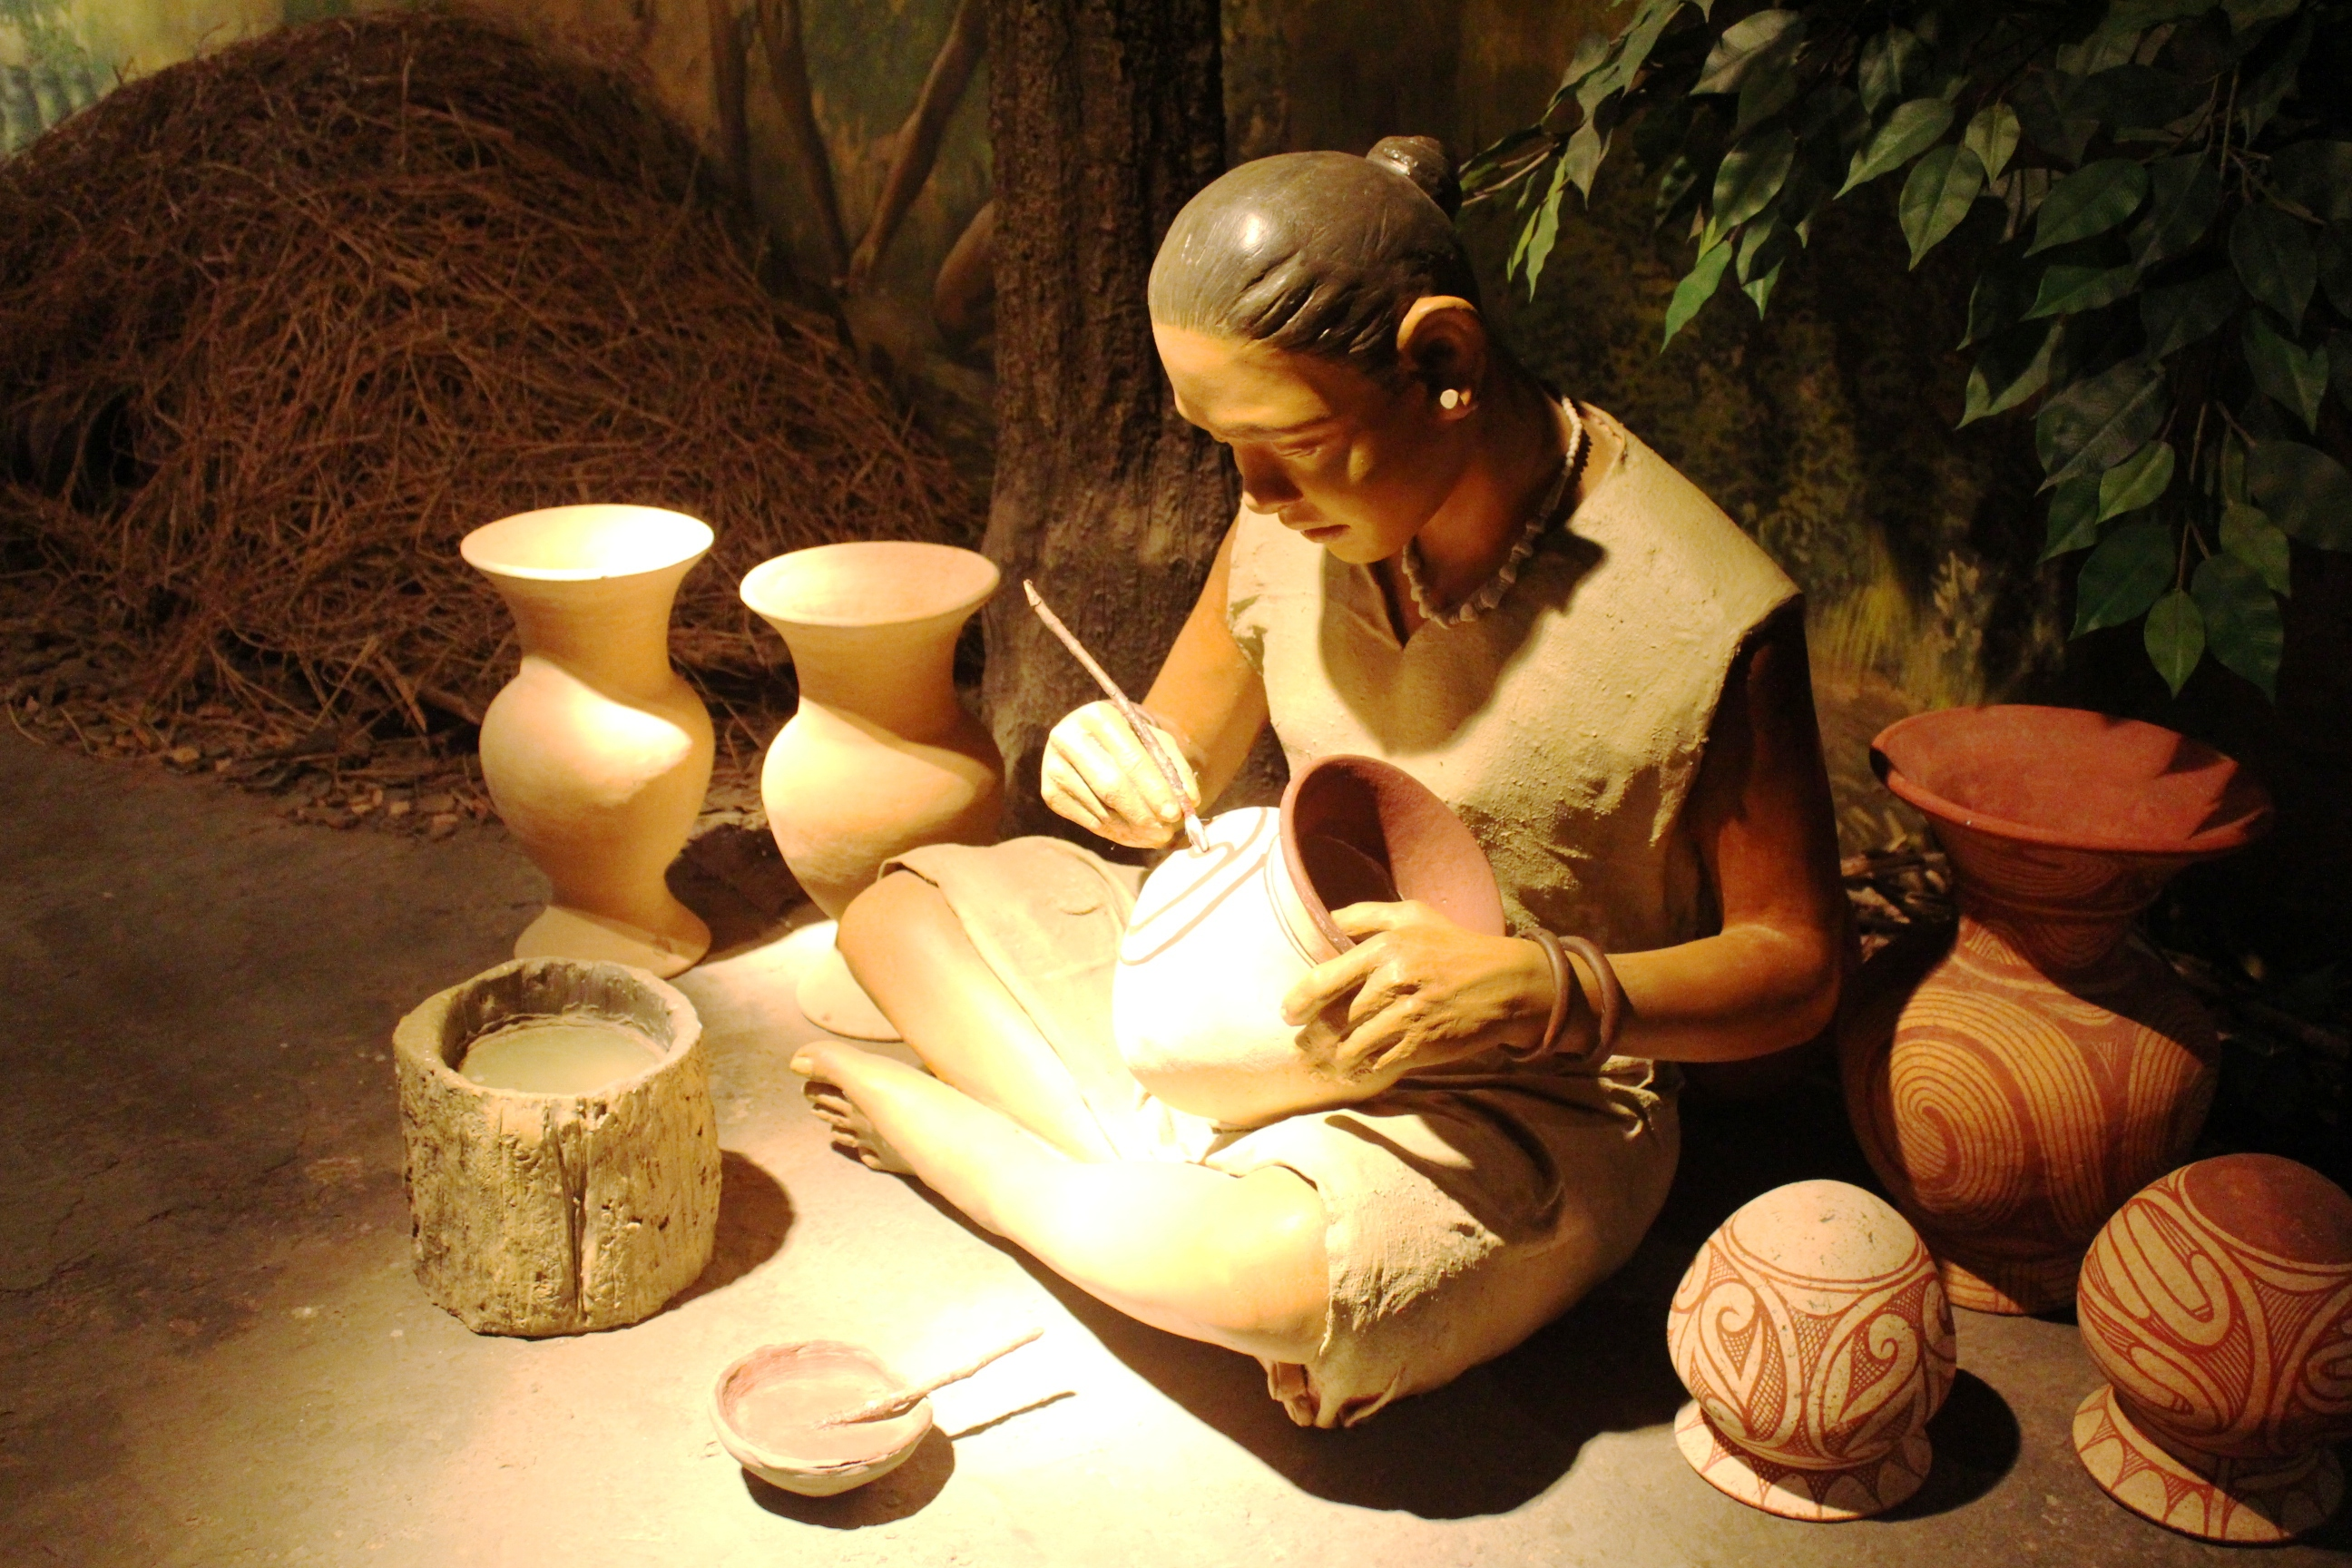 File:Ban Chiang Woman making pots.JPG - Wikimedia Commons